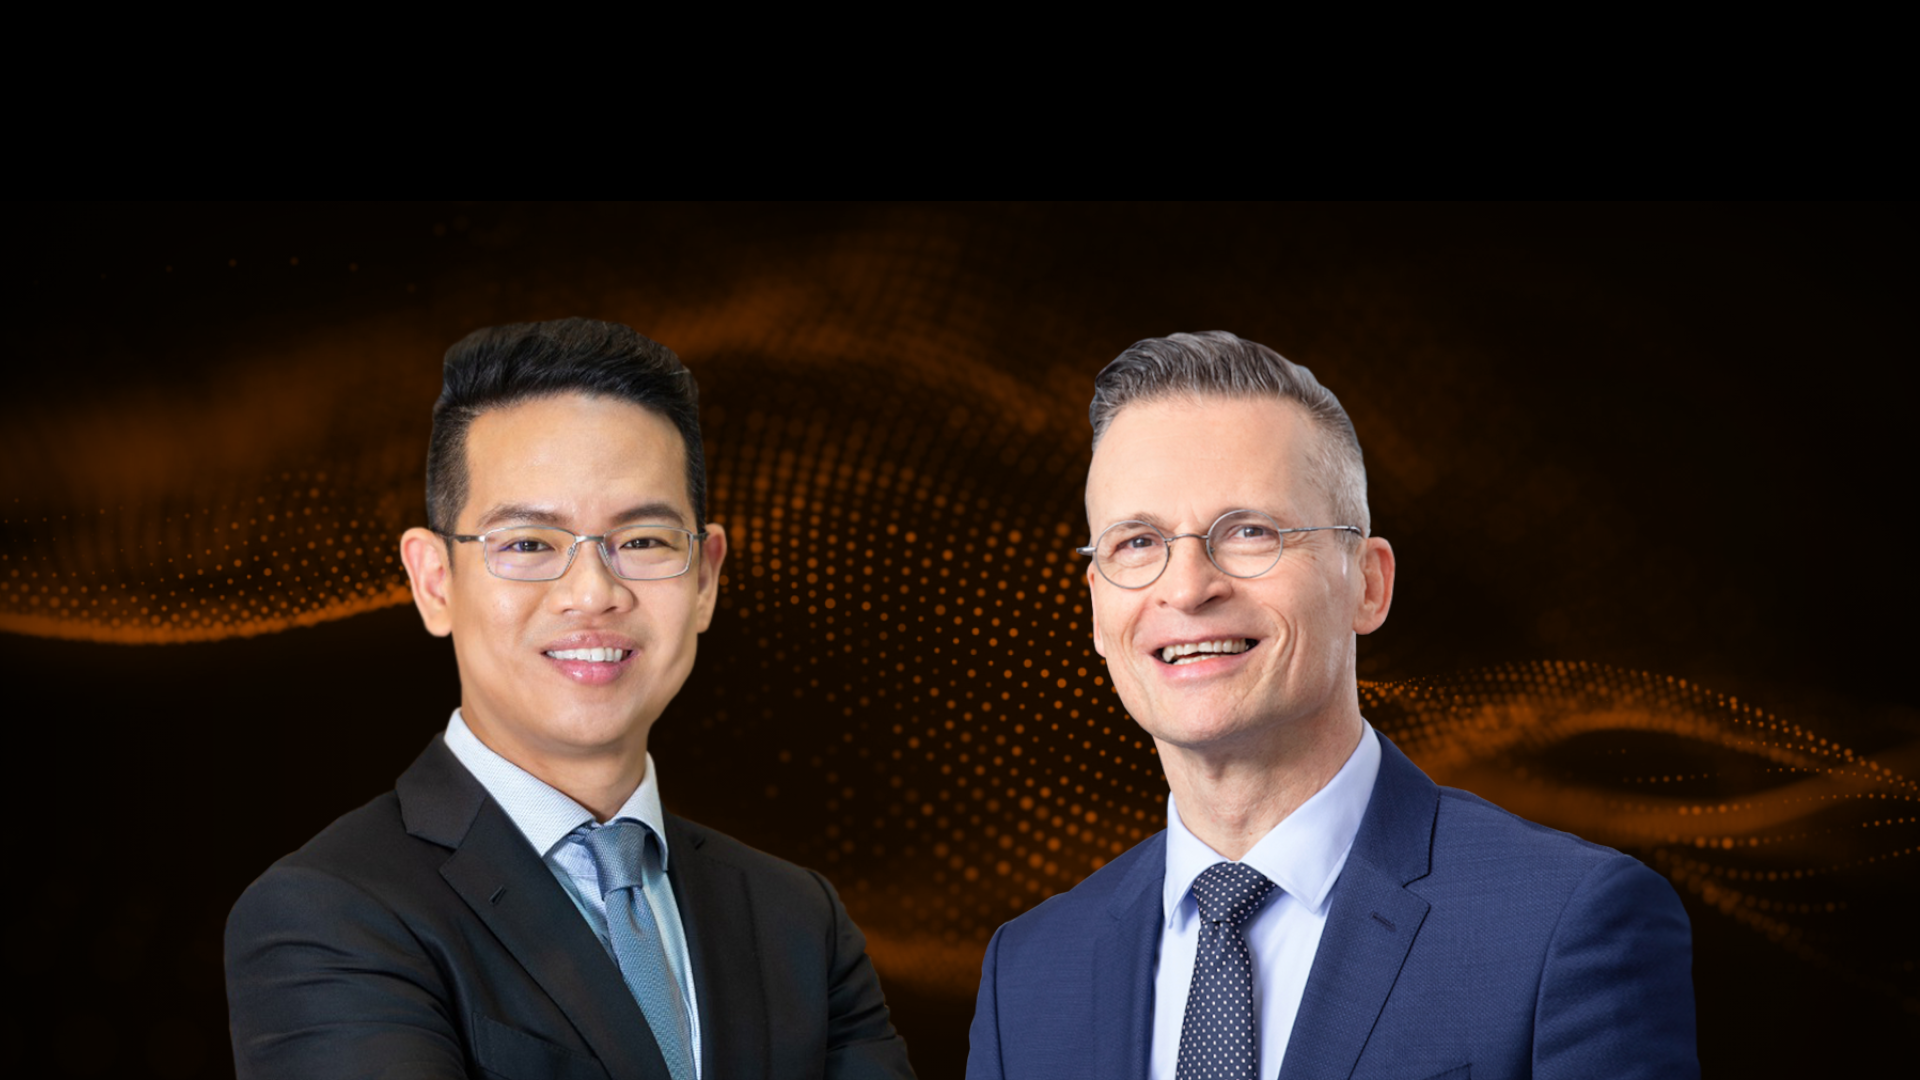 In this podcast, Noel Yeo (l.) and Christoph Zindel discuss why experience may pave the way for future innovations.